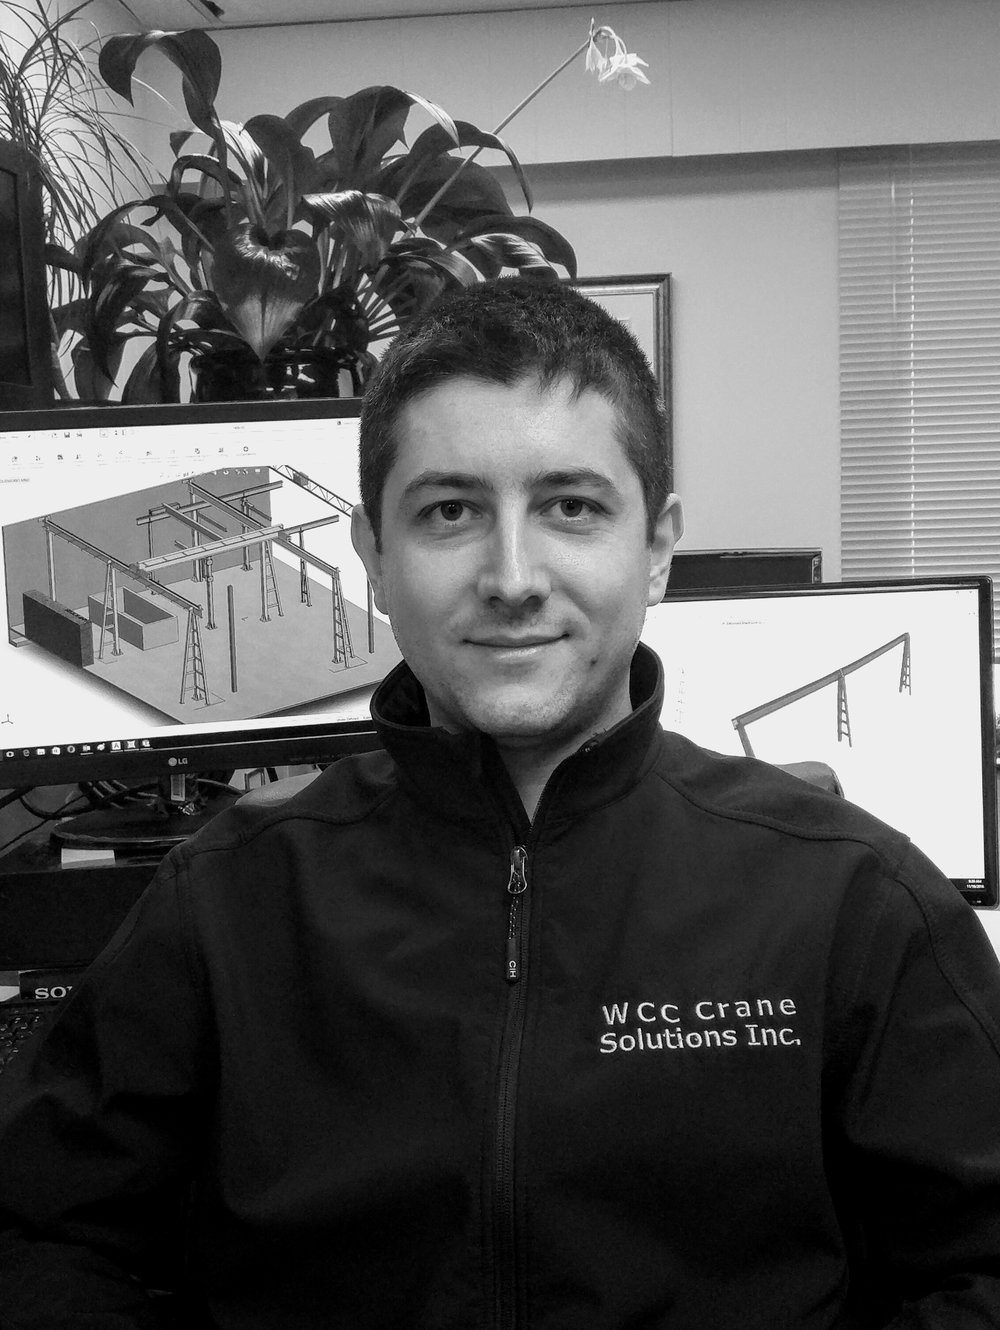 George Grujic    - Structural Engineer -   George has been involved in civil and structural engineering for over 7 years. He began his career in Serbia before moving to Canada 6 years ago and has been with WCC Crane Solutions since 2014.  George is always expanding his knowledge in the engineering field and is currently working towards this Professional Engineering (P. eng.) license.  George lives in Burnaby and has recently become a new father.     LinkedIn